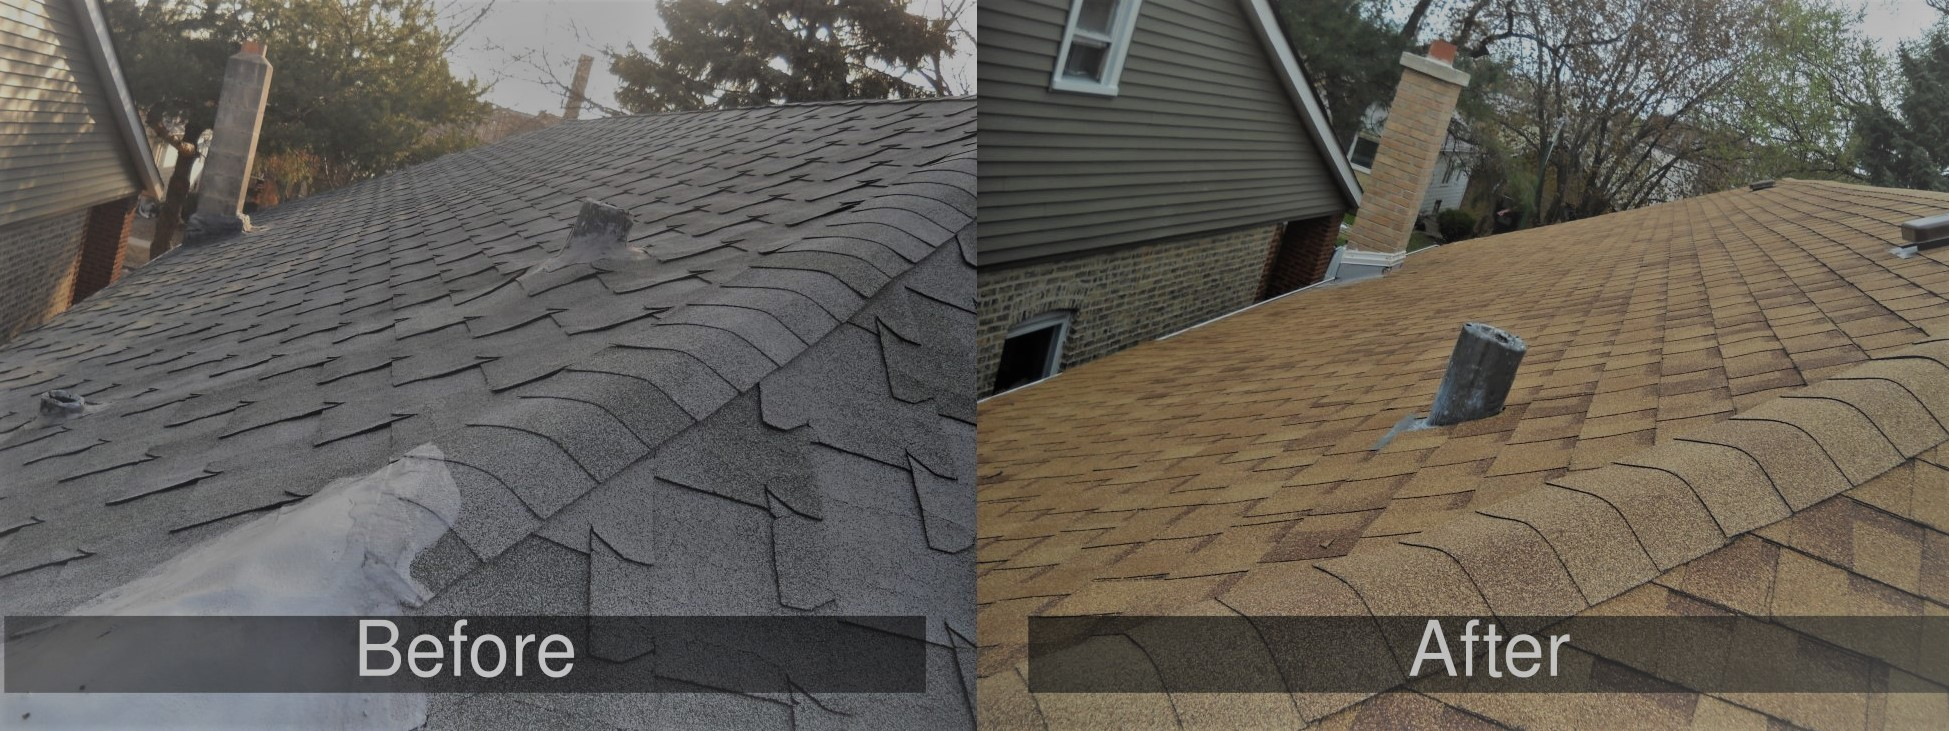 before and after roof installation by roofers in Glenview